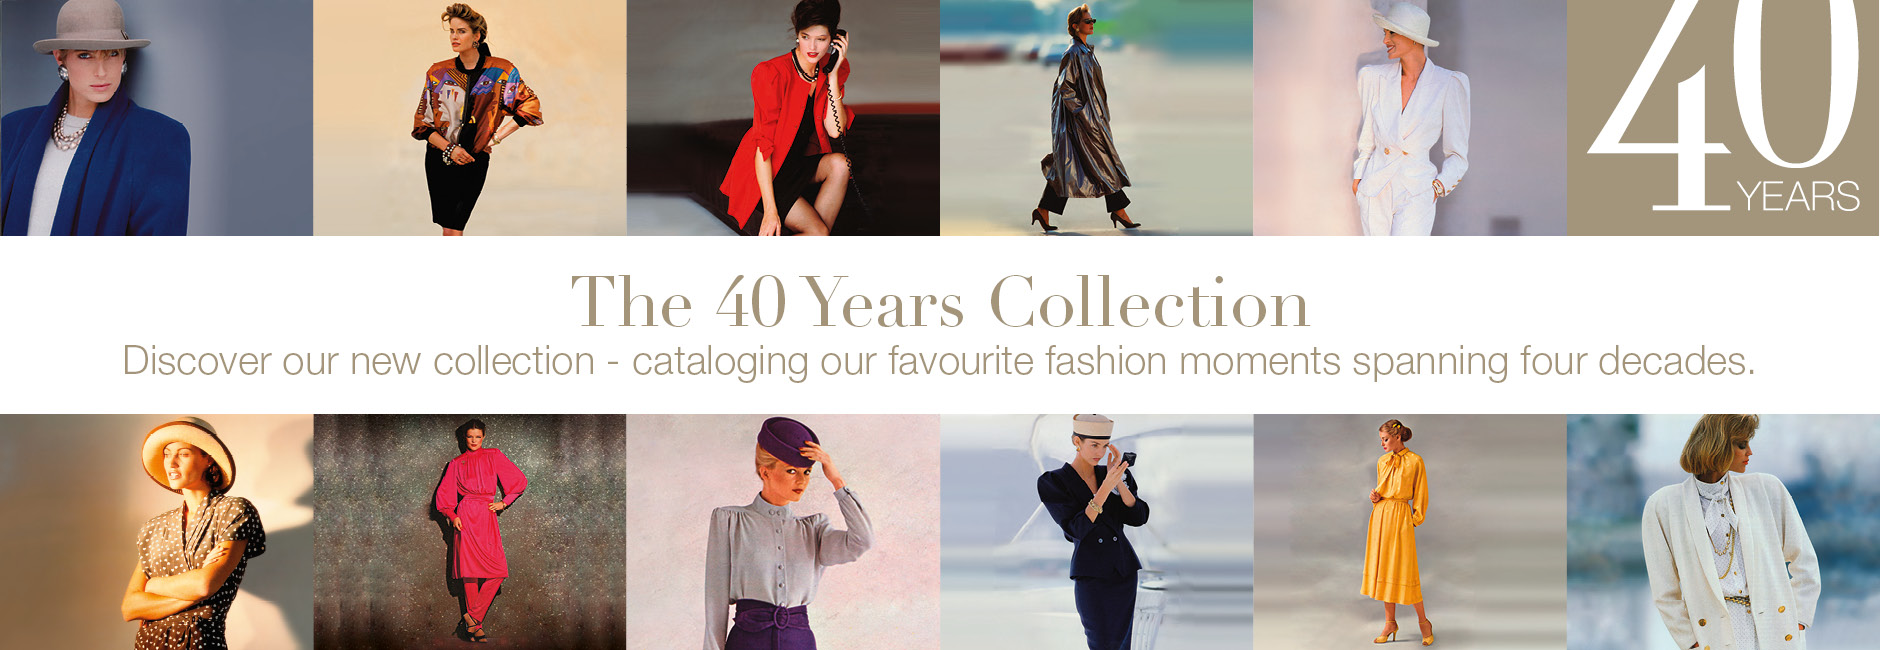 40 years of fashion